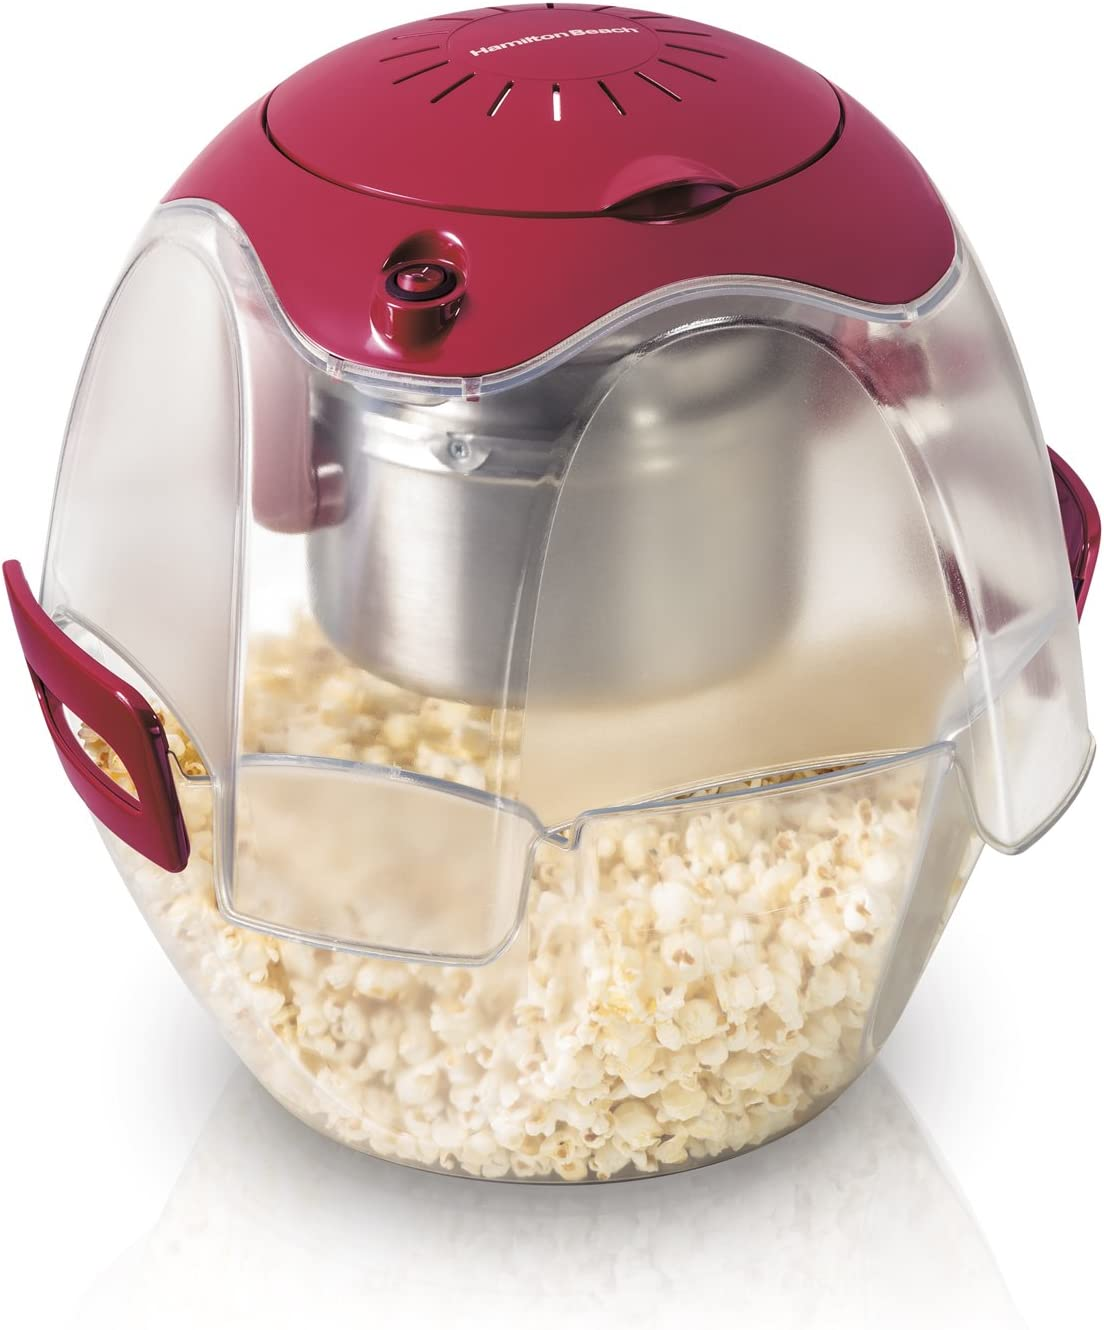 Hamilton Beach 73310 Electric Theater Style Party Popcorn Popper Machine, 6 to 24 Cups, Base Doubles as Serving Bowl, Nests for Easy Storage, Red Discontinued